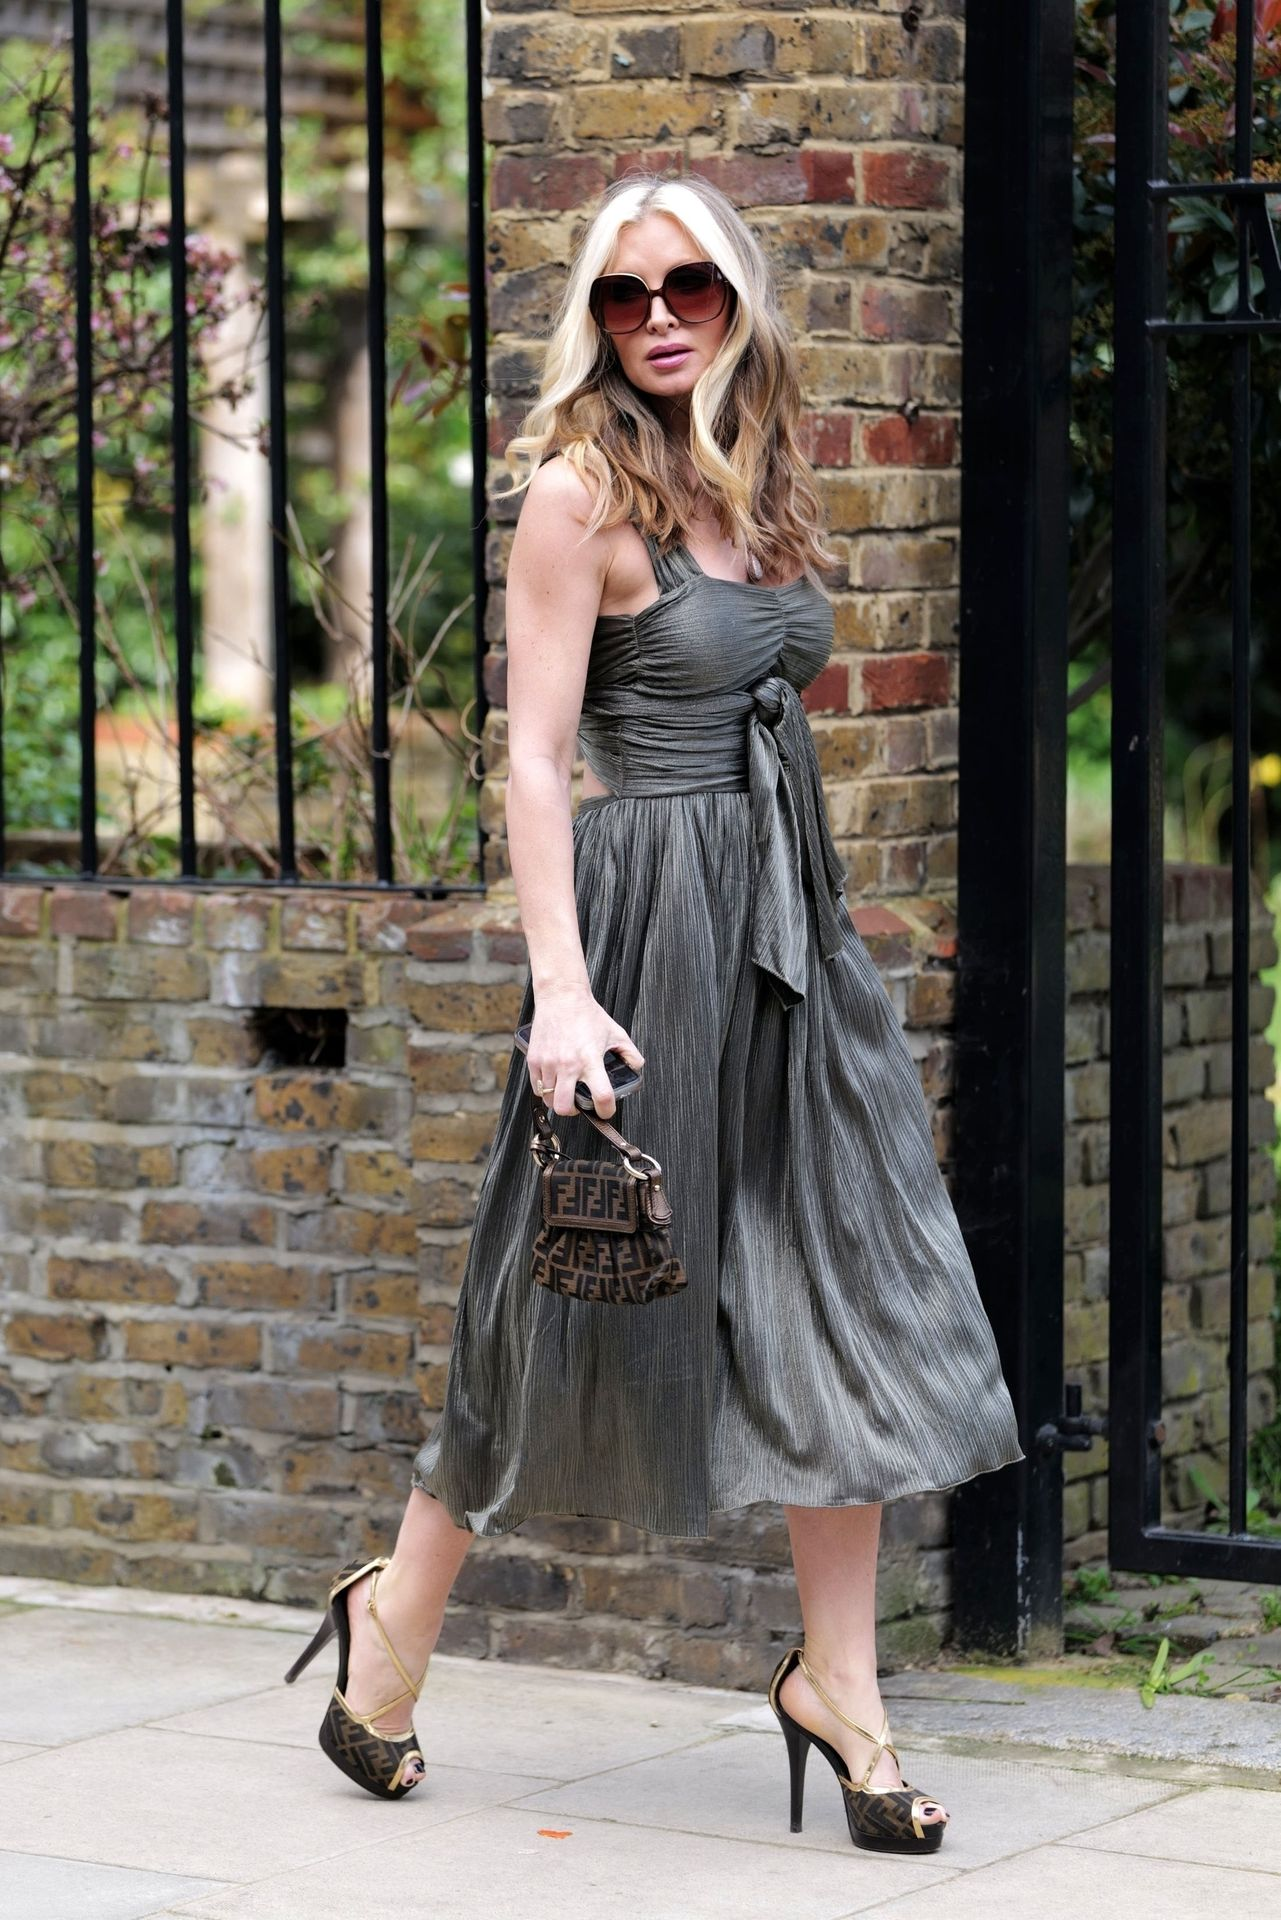 Caprice Bourret Steps Out Looking Glamorous In London 0004